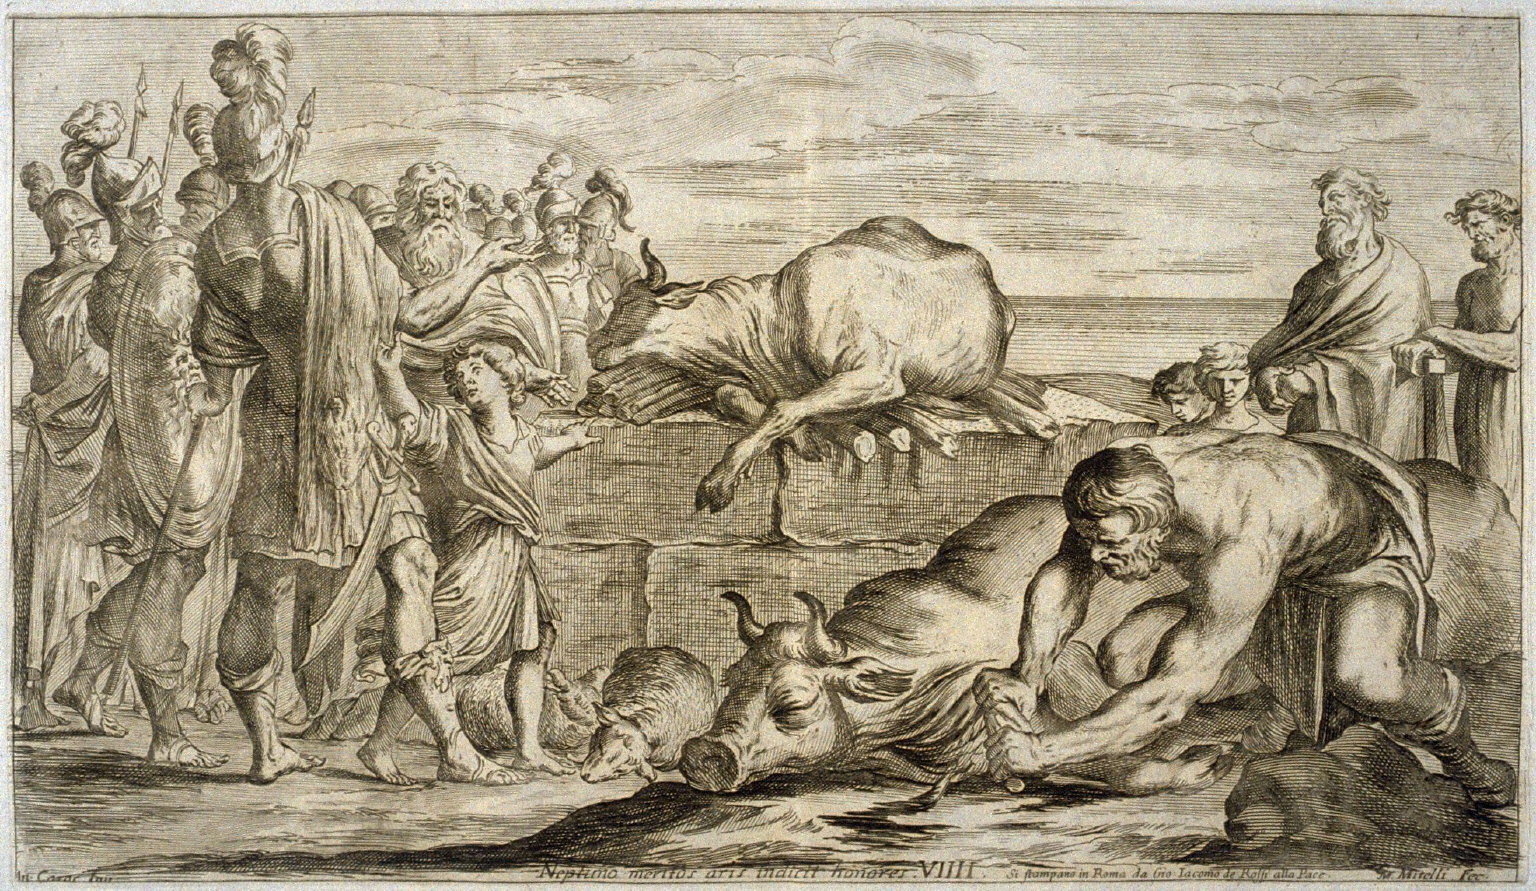 The Trojans Sacrifice Bulls to Neptune, plate 9 of L'Enea Vagante Pitture dei Caracci (Wanderings of Aeneas Painted by the Carracci), from of a set of twenty prints after the paintings by Ludovico, Annibale, and Agostino Carracci in the Palazzo Fava, Bologna